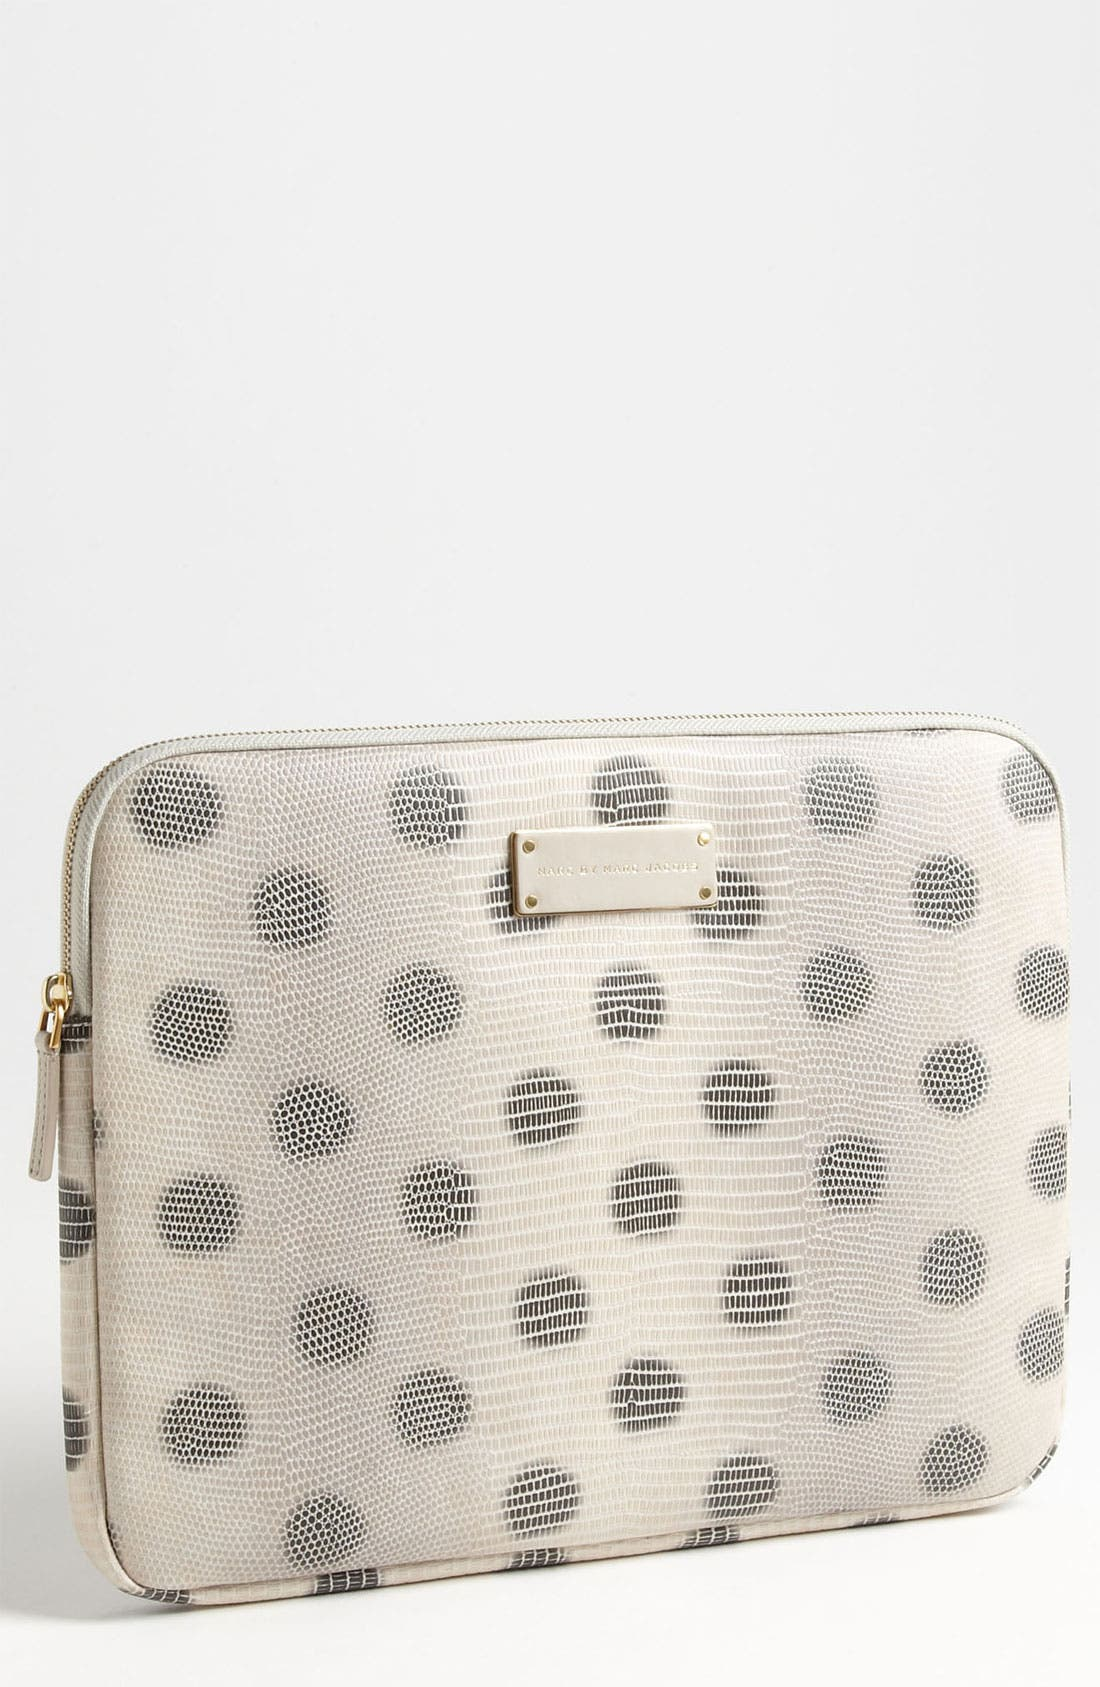 Main Image - MARC BY MARC JACOBS 'Take Me - Lizzie Dots' Embossed Computer Sleeve (13 Inch)